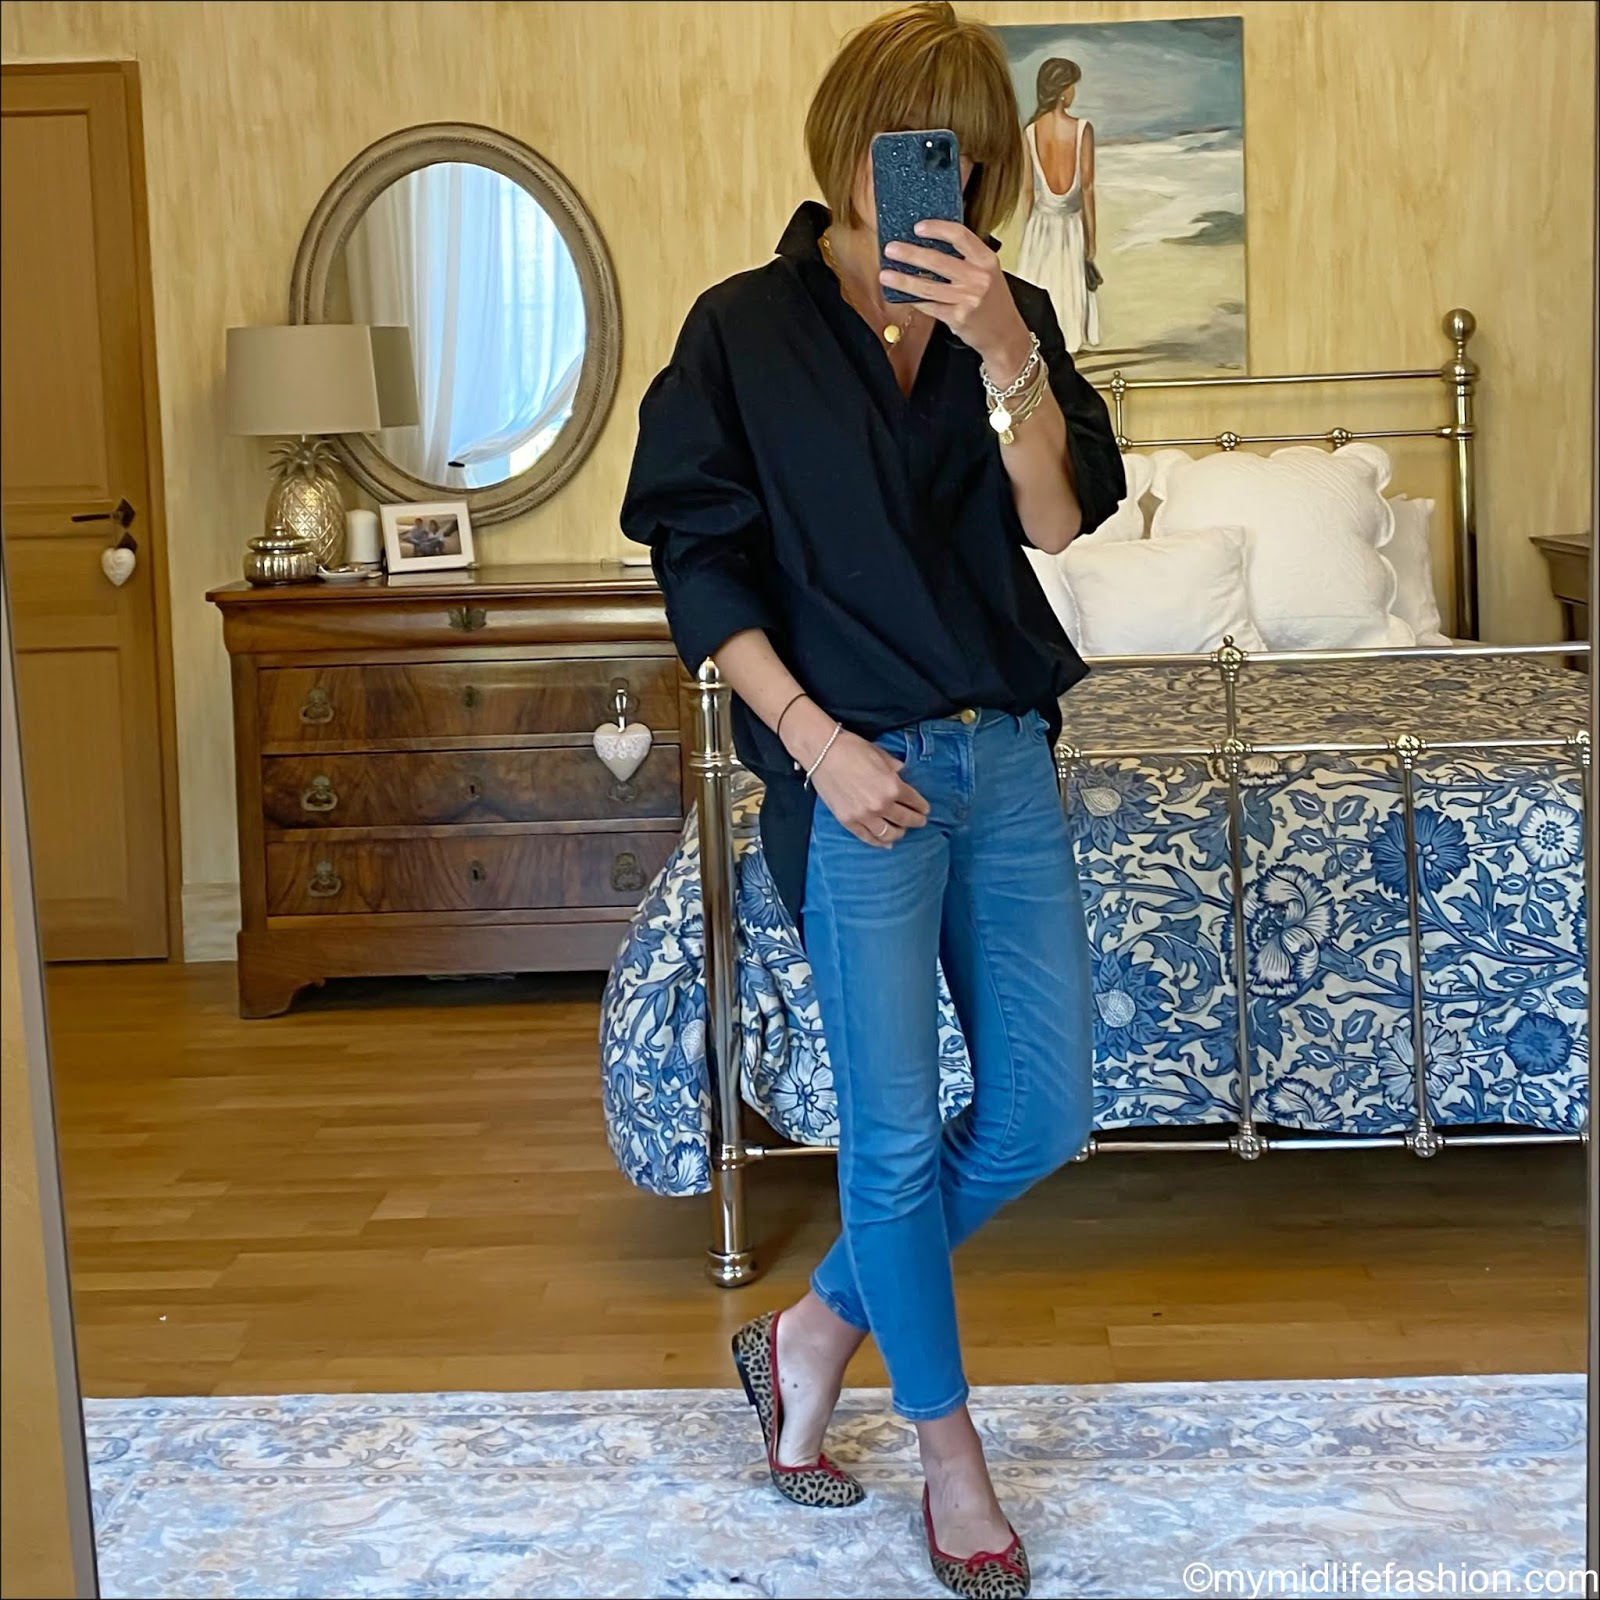 my midlife fashion, zara oversized shirt, j crew 8 inch toothpick jeans, French sole cheetah print ballet pumps